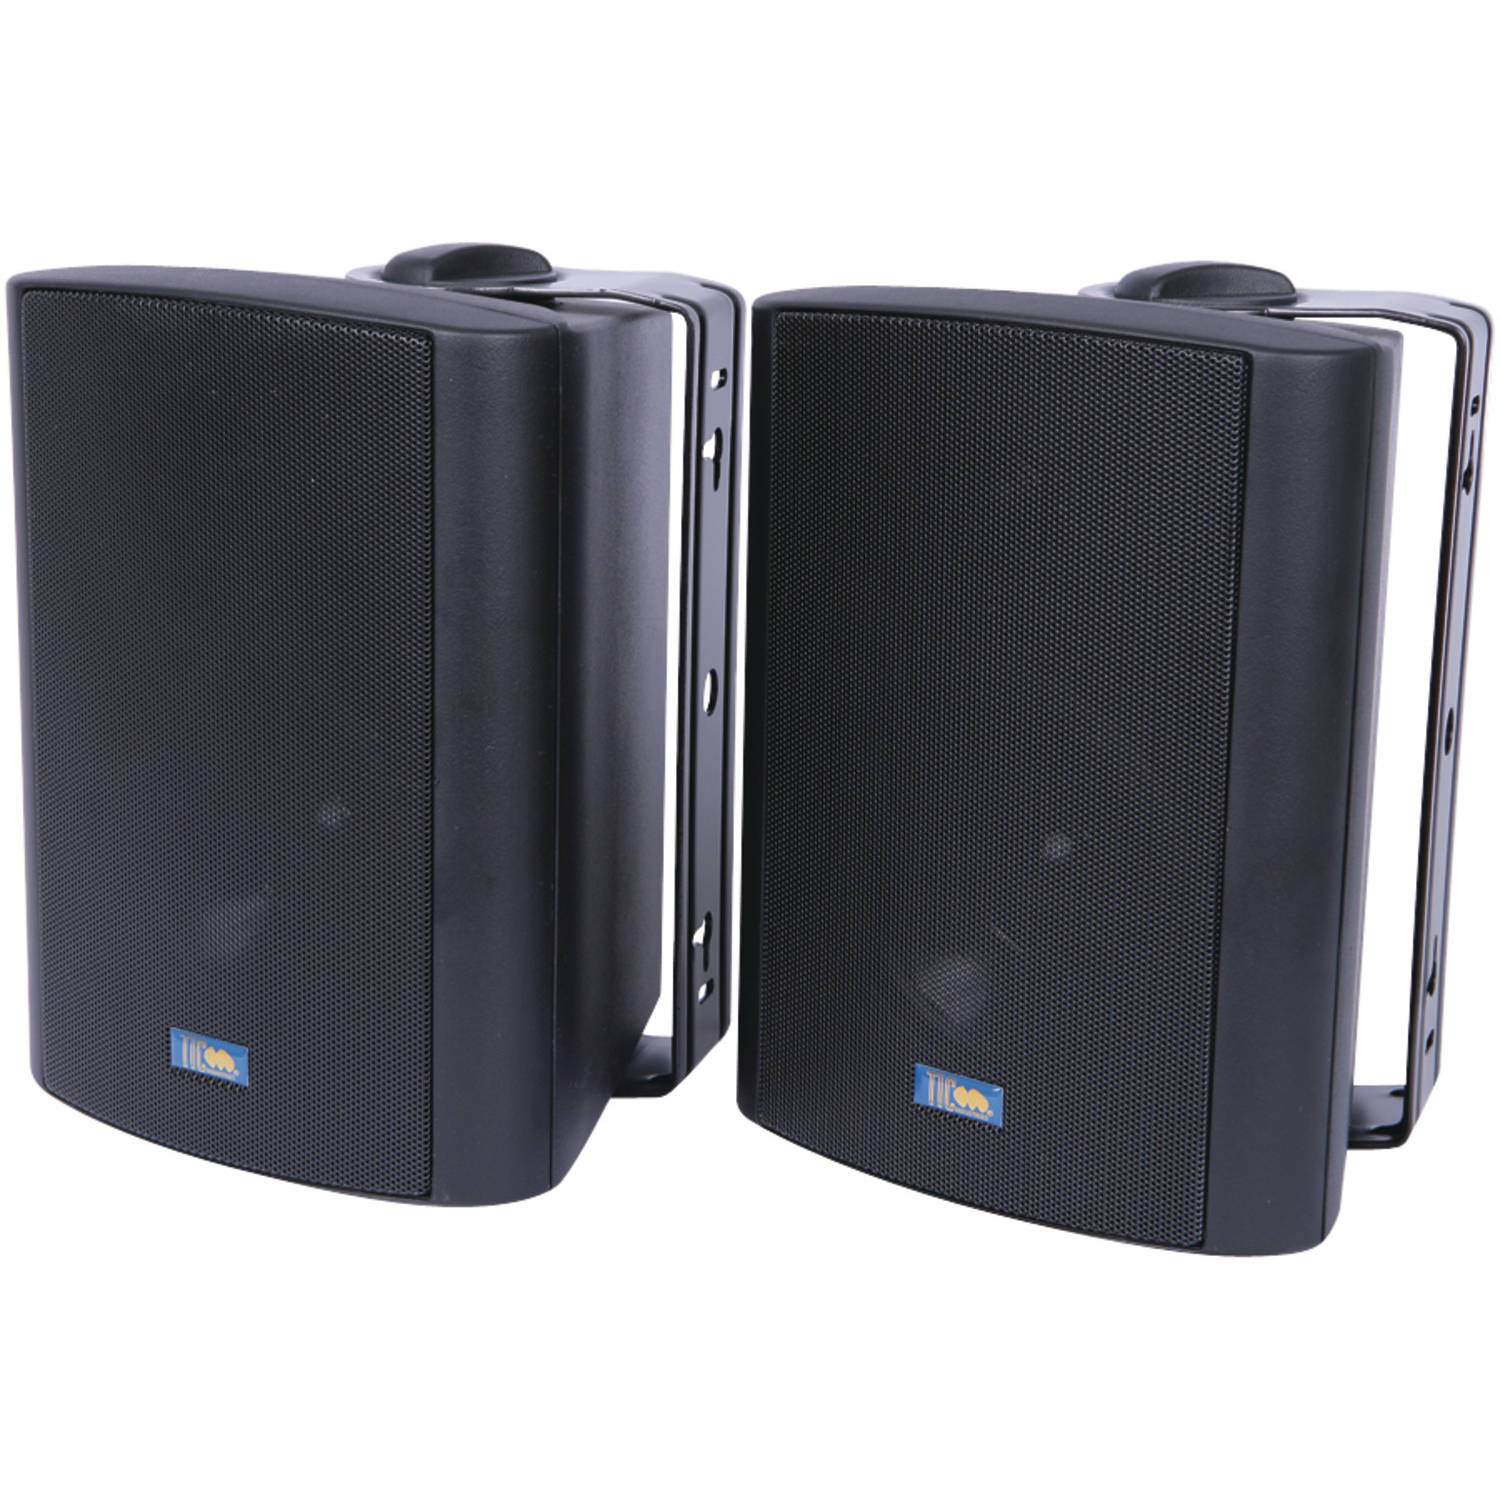 Tic Corporation As P60b Indoor/Outdoor 75-Watt Speakers with 70-Volt Switching